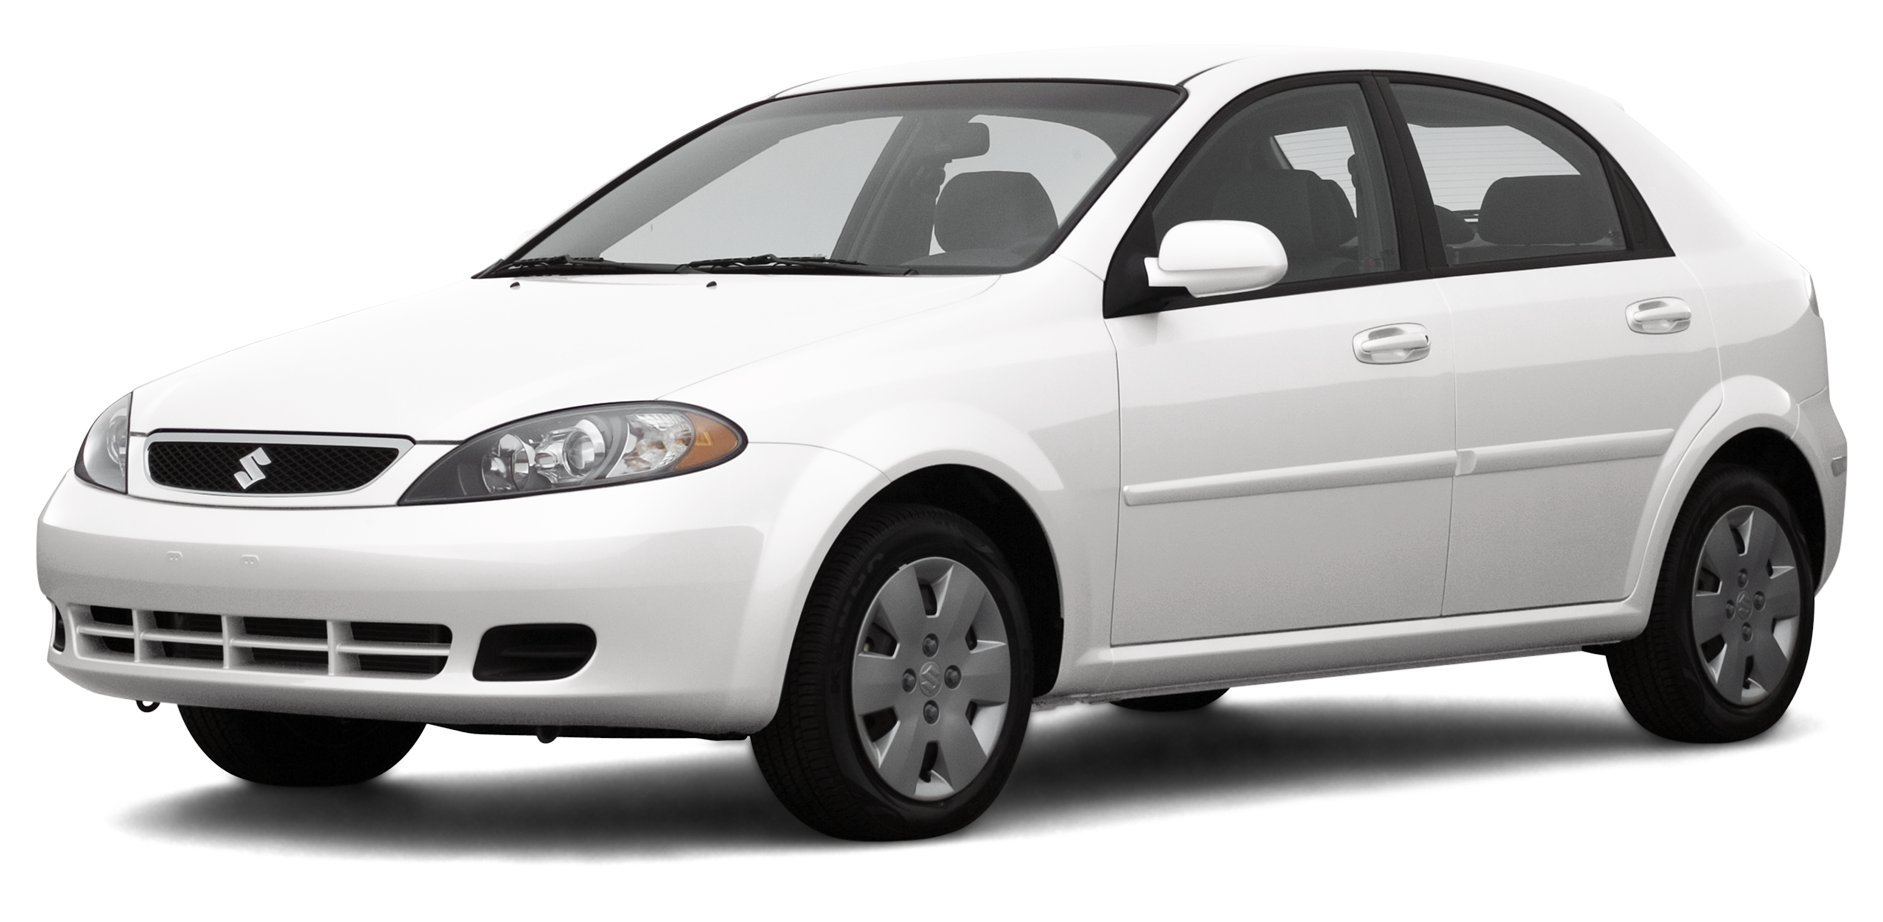 2007 toyota corolla reviews images and specs. Black Bedroom Furniture Sets. Home Design Ideas